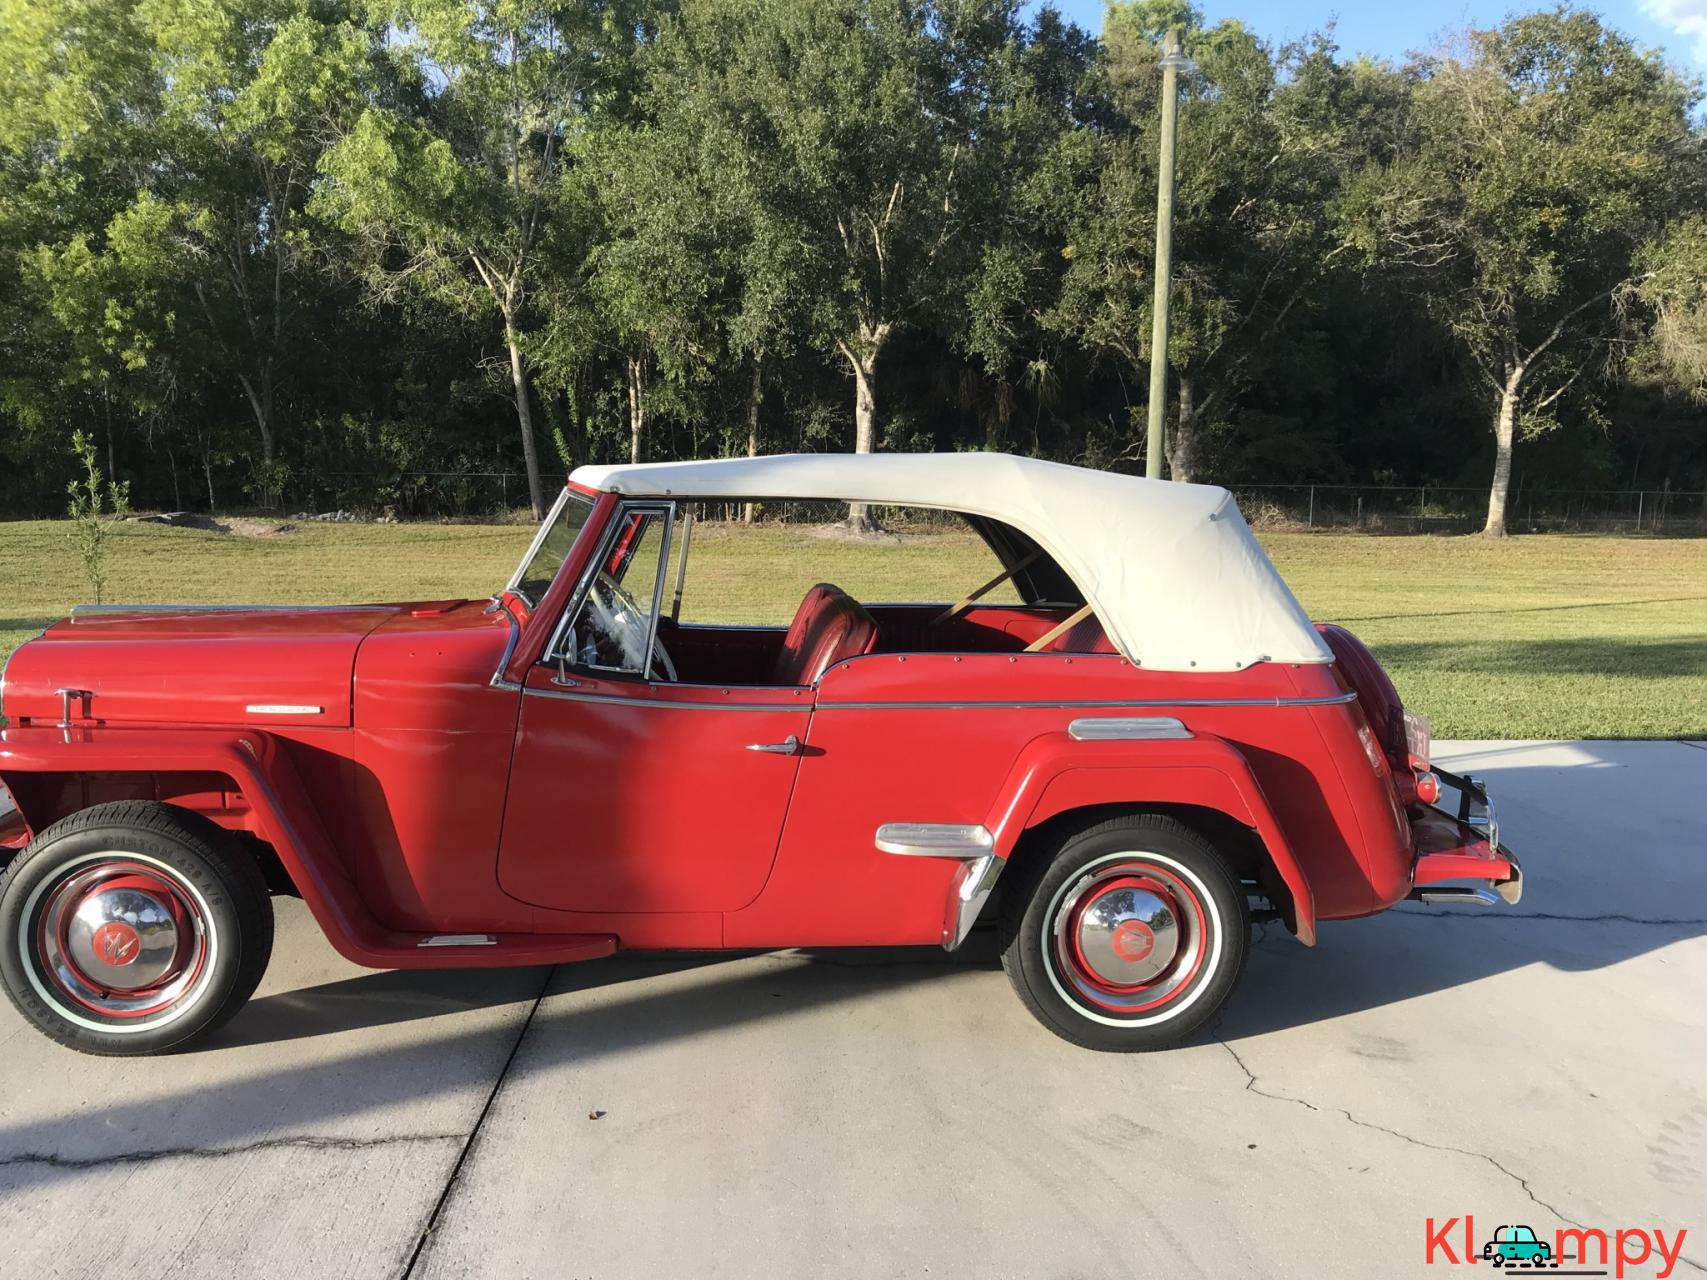 1949 Willys-Overland Jeepster 148ci L48 - 14/16